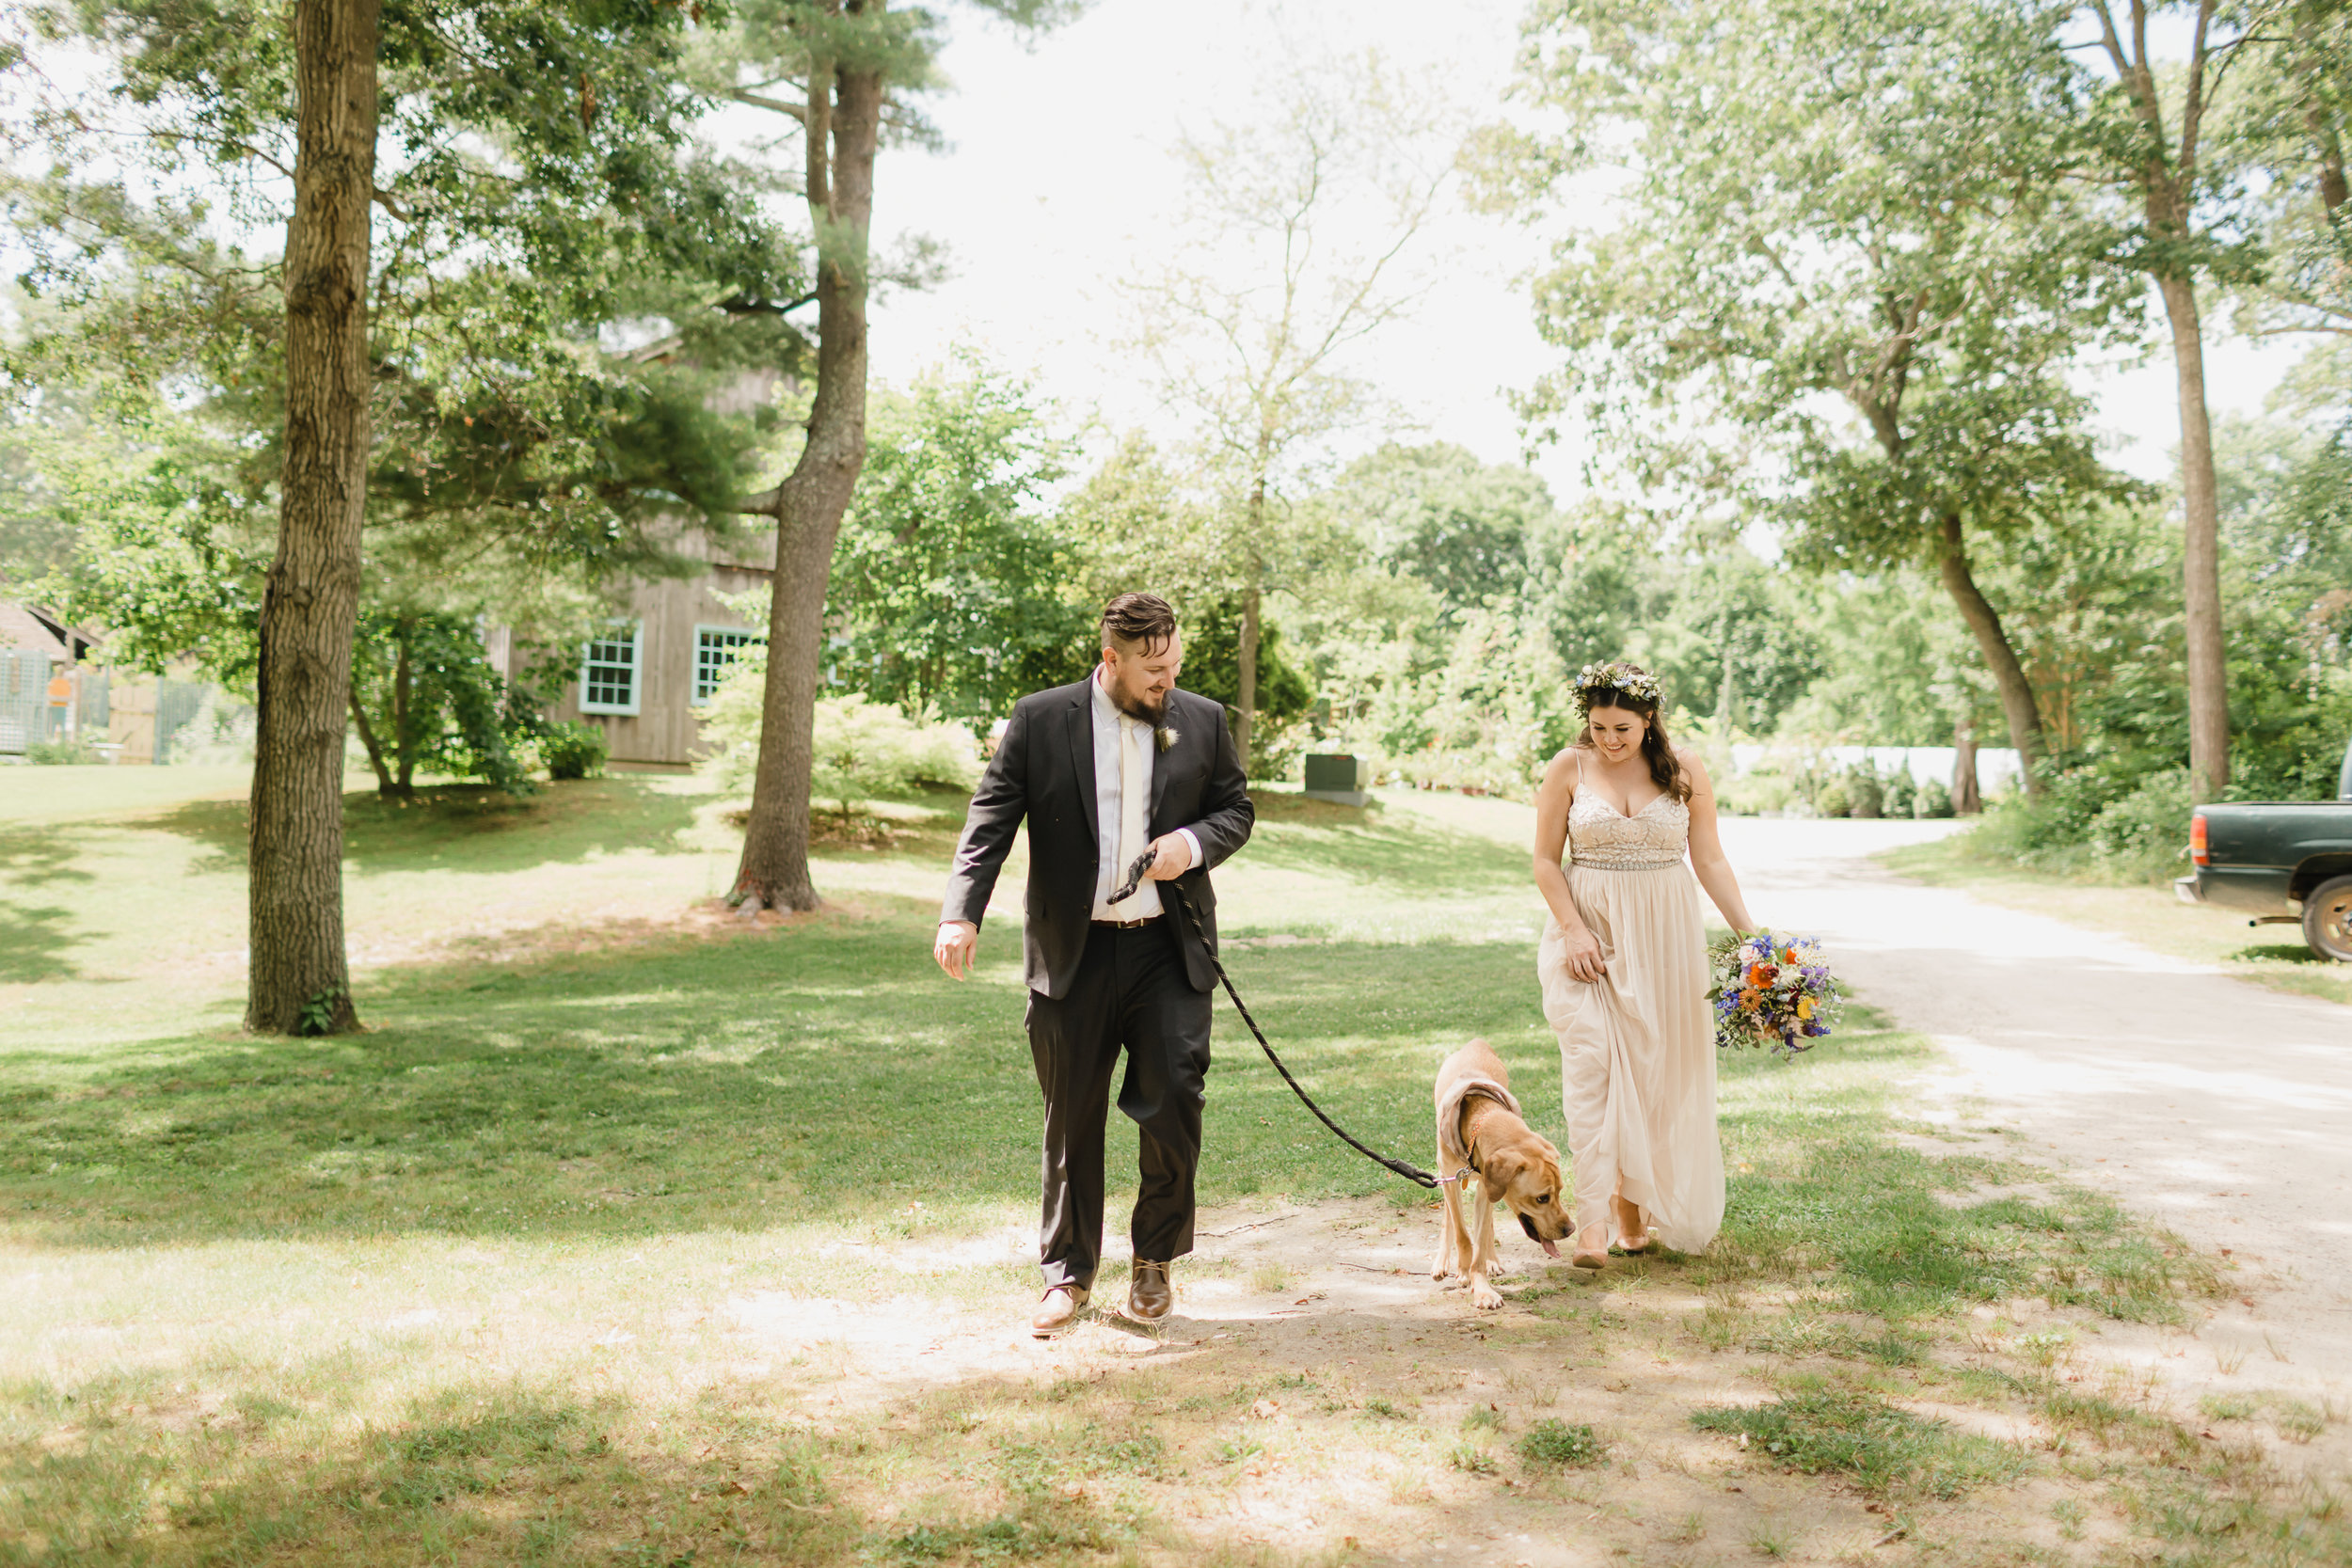 Gianna Keiko Atlanta NYC California Wedding Photographer_Sneak Peek-9.jpg